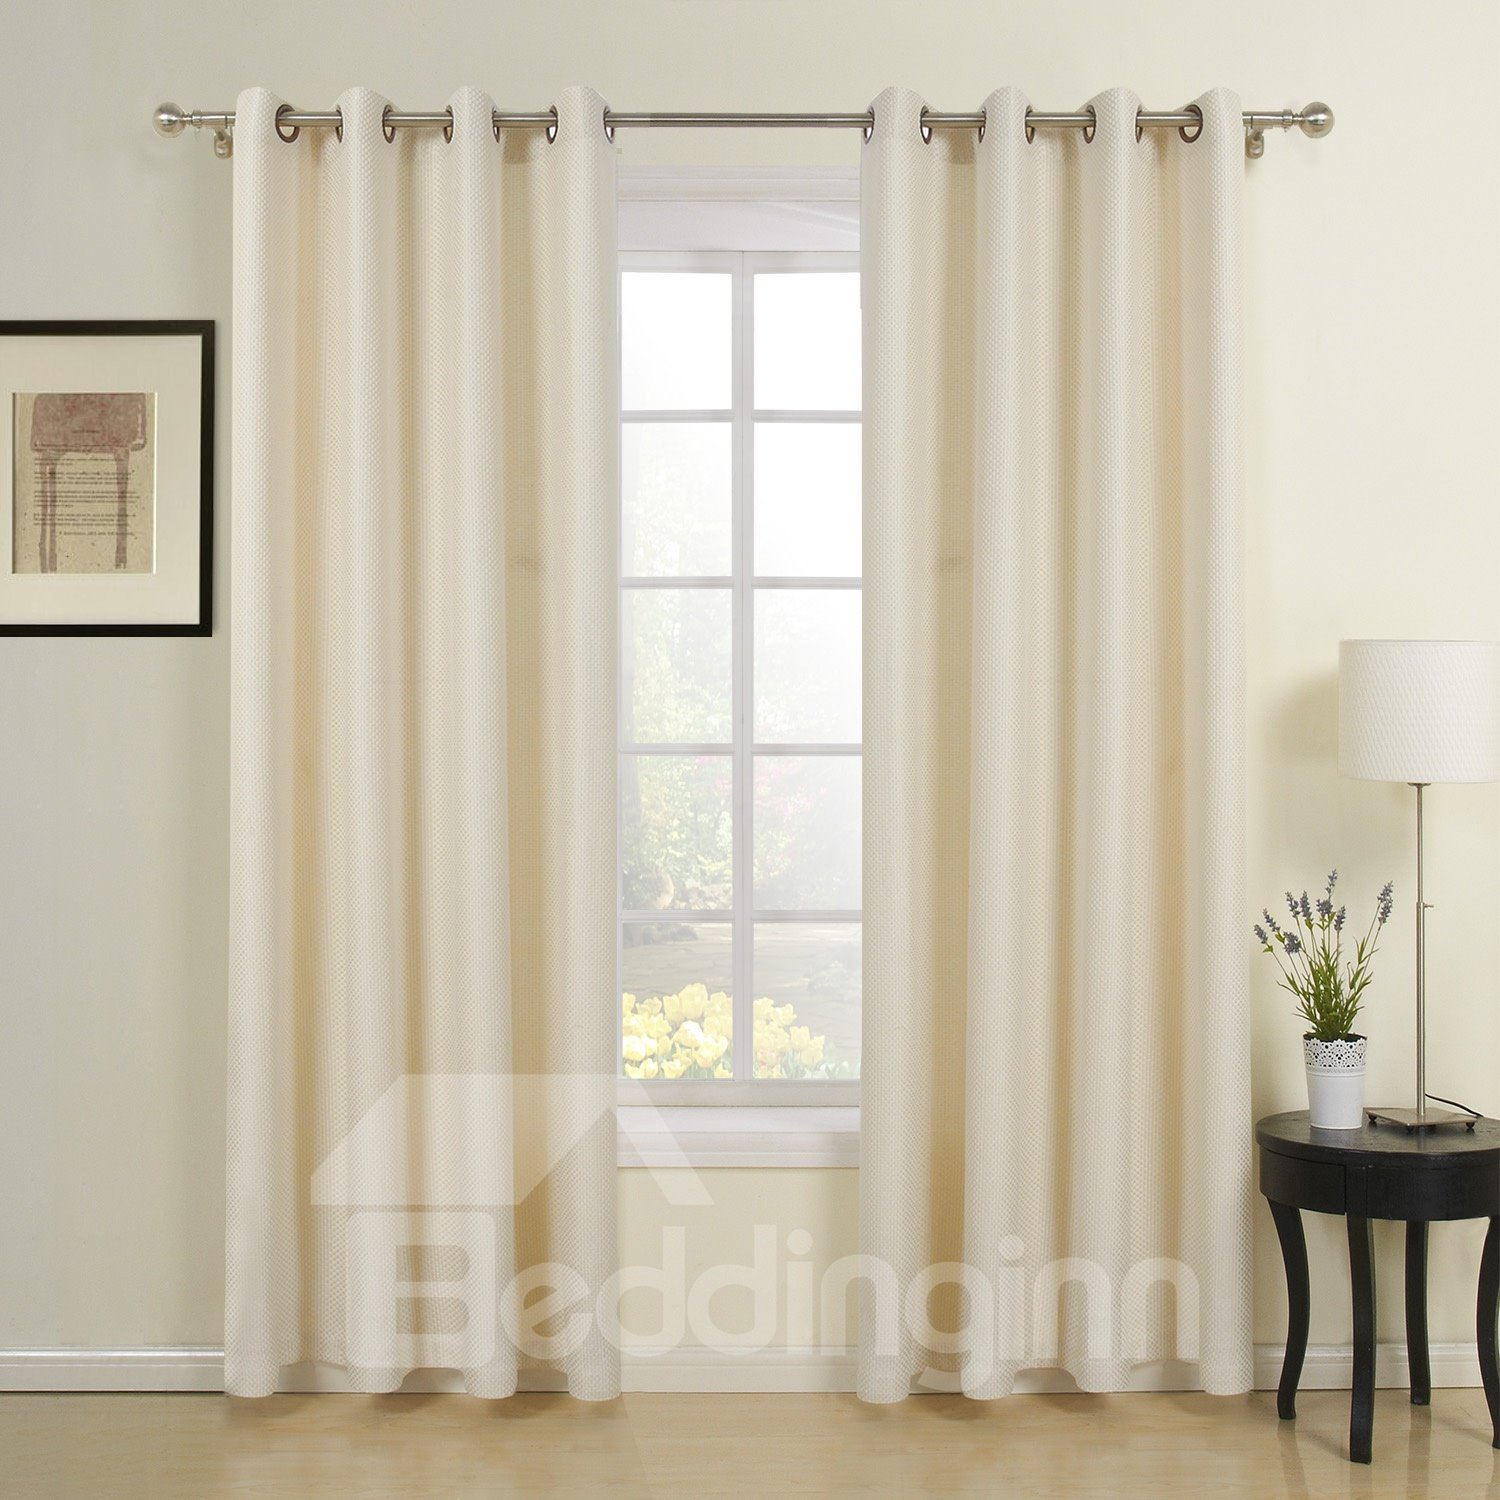 Creamy-White Elegant Wonderful Two Pieces Custom Curtain